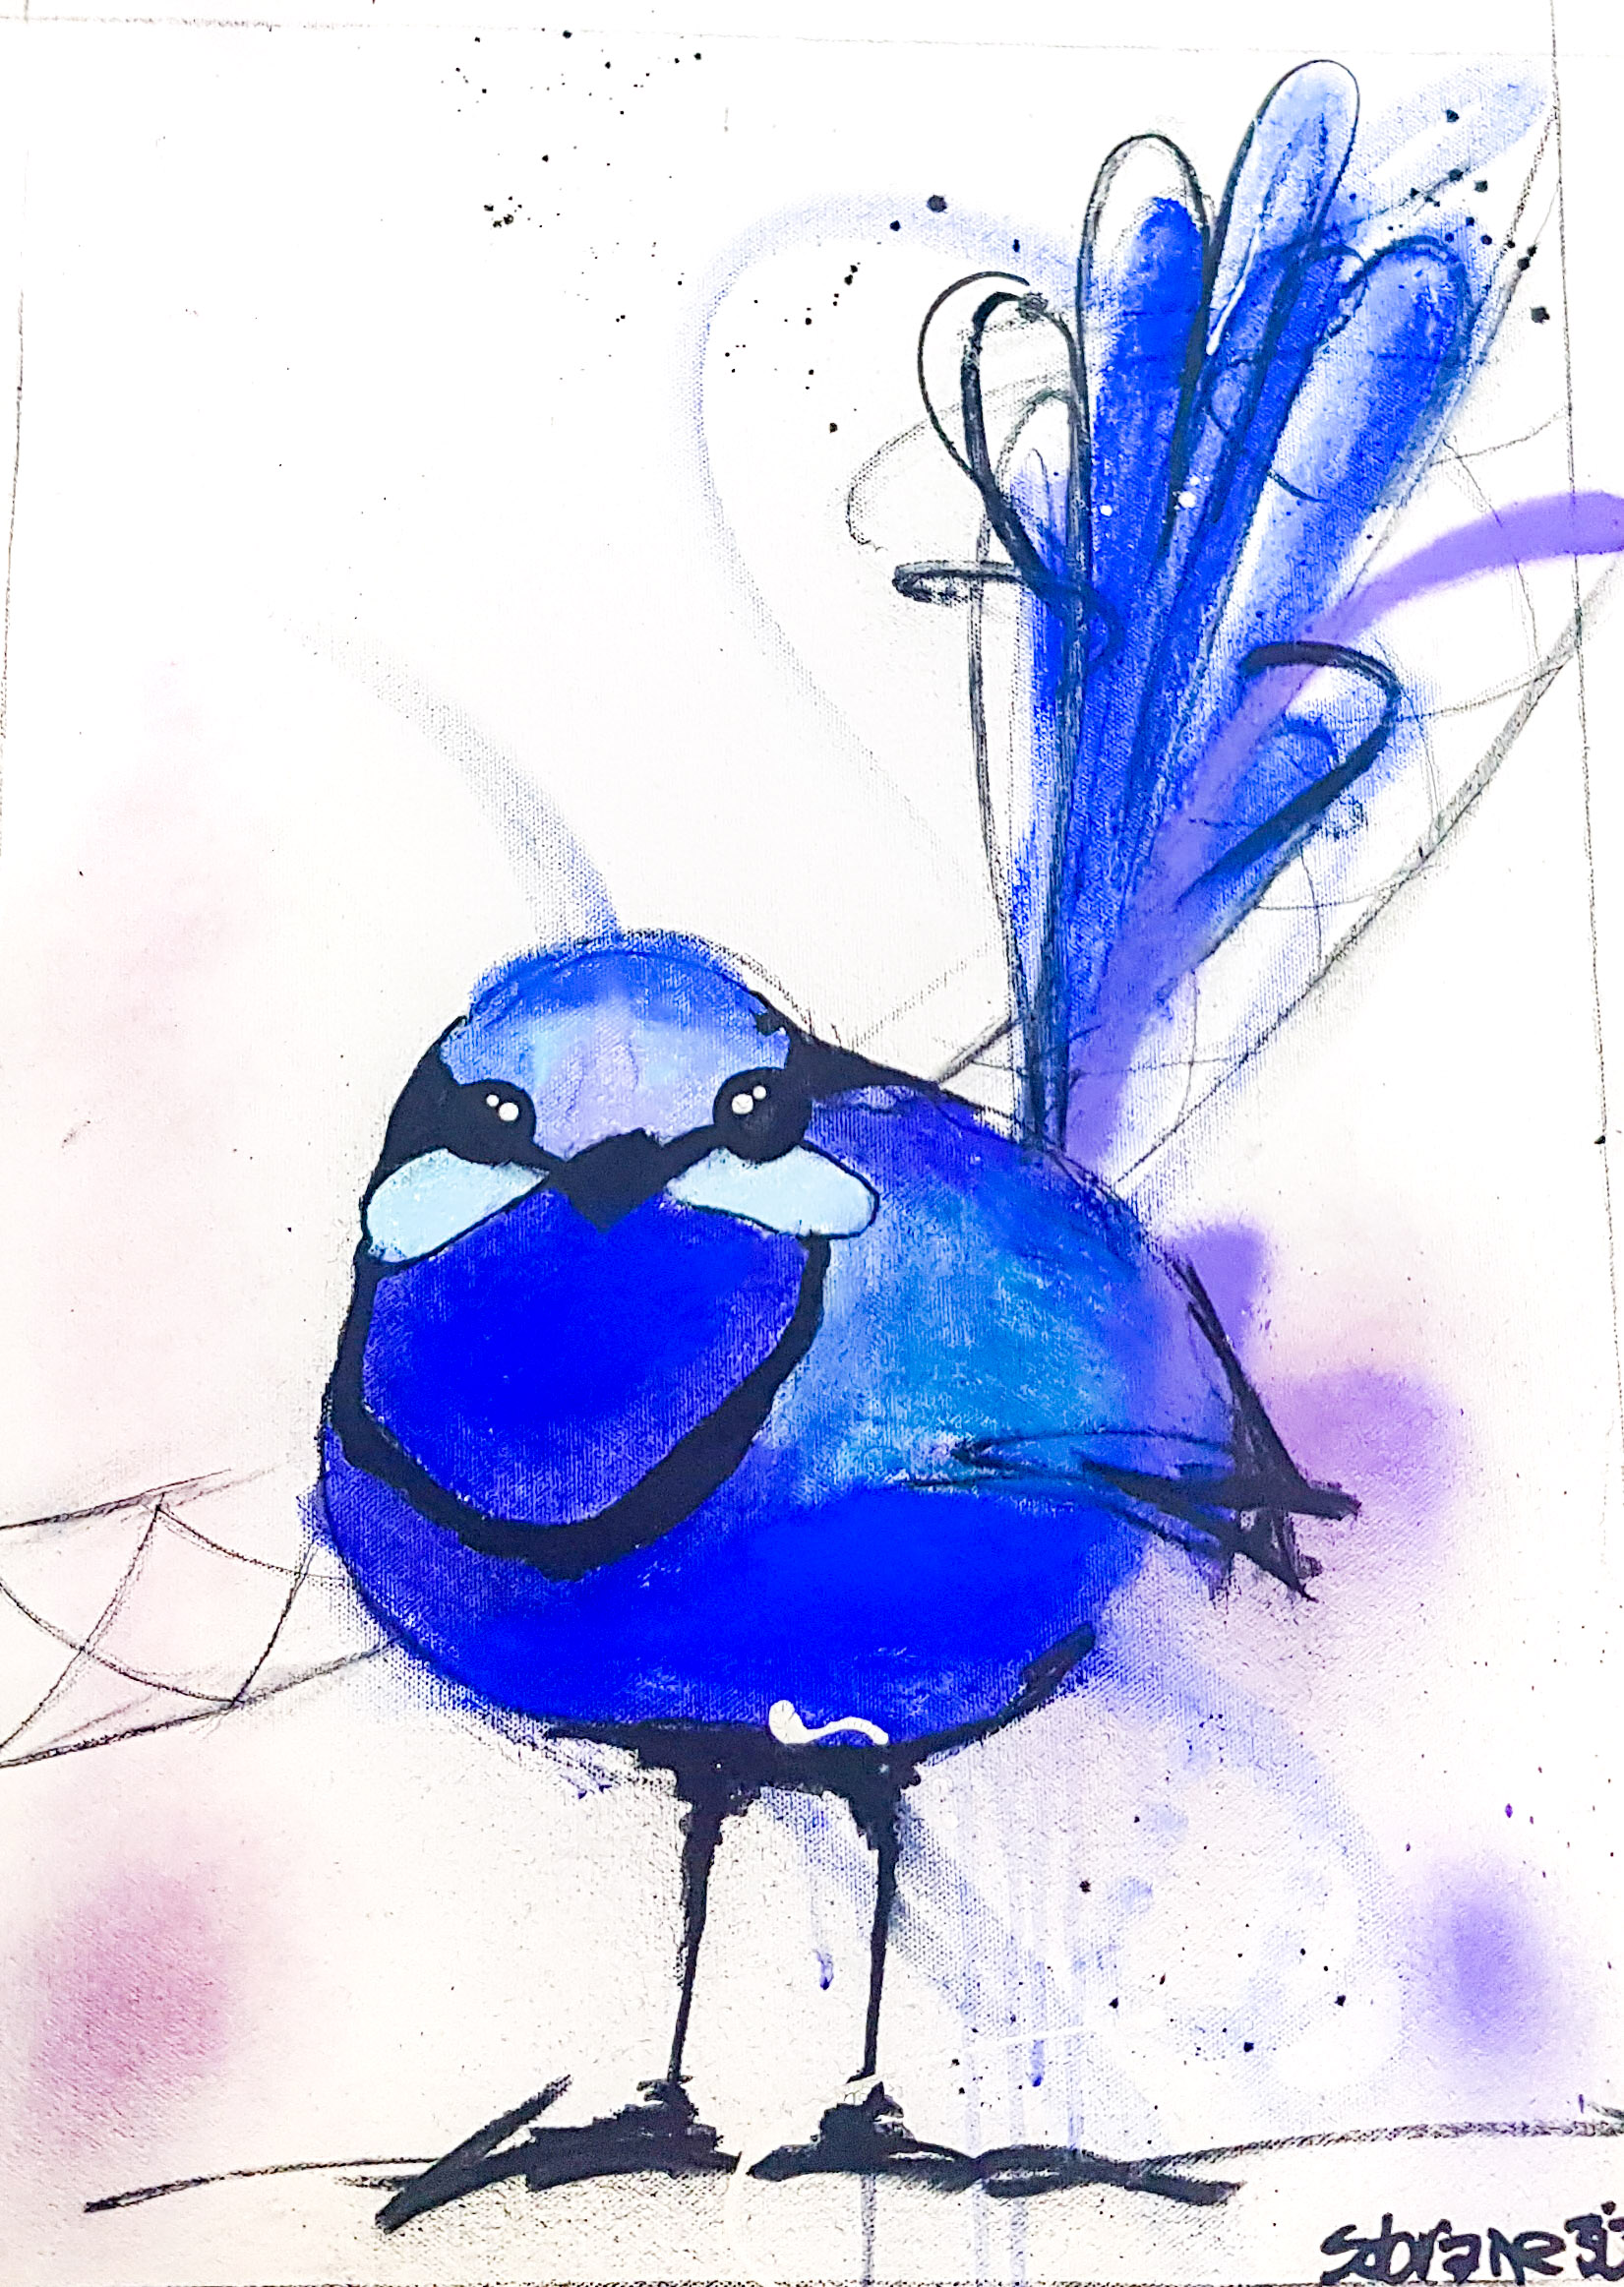 Splendid Blue Wren Original Original artwork completed in Pastels, spray-paint, charcoal and enamel.  Artwork is on canvas 53 x 38 cm FREE SHIPPING ON ALL ORIGINALS WORLDWIDE